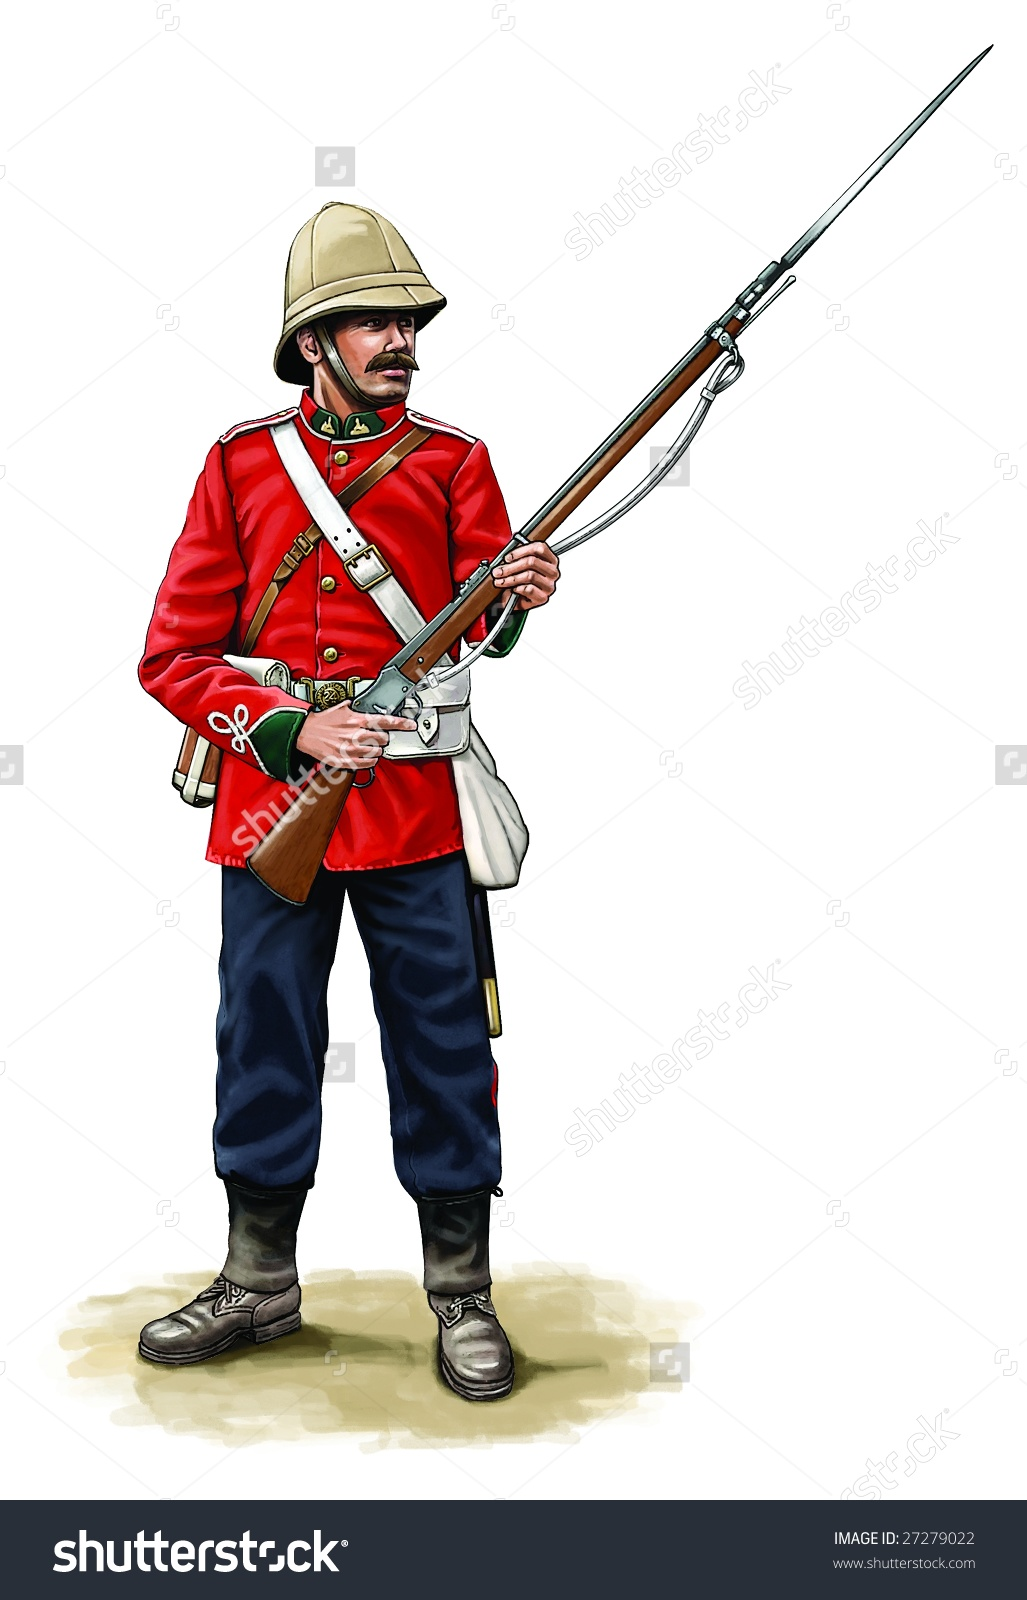 Soldier clipart british soldier Military british (72+) soldier colonial